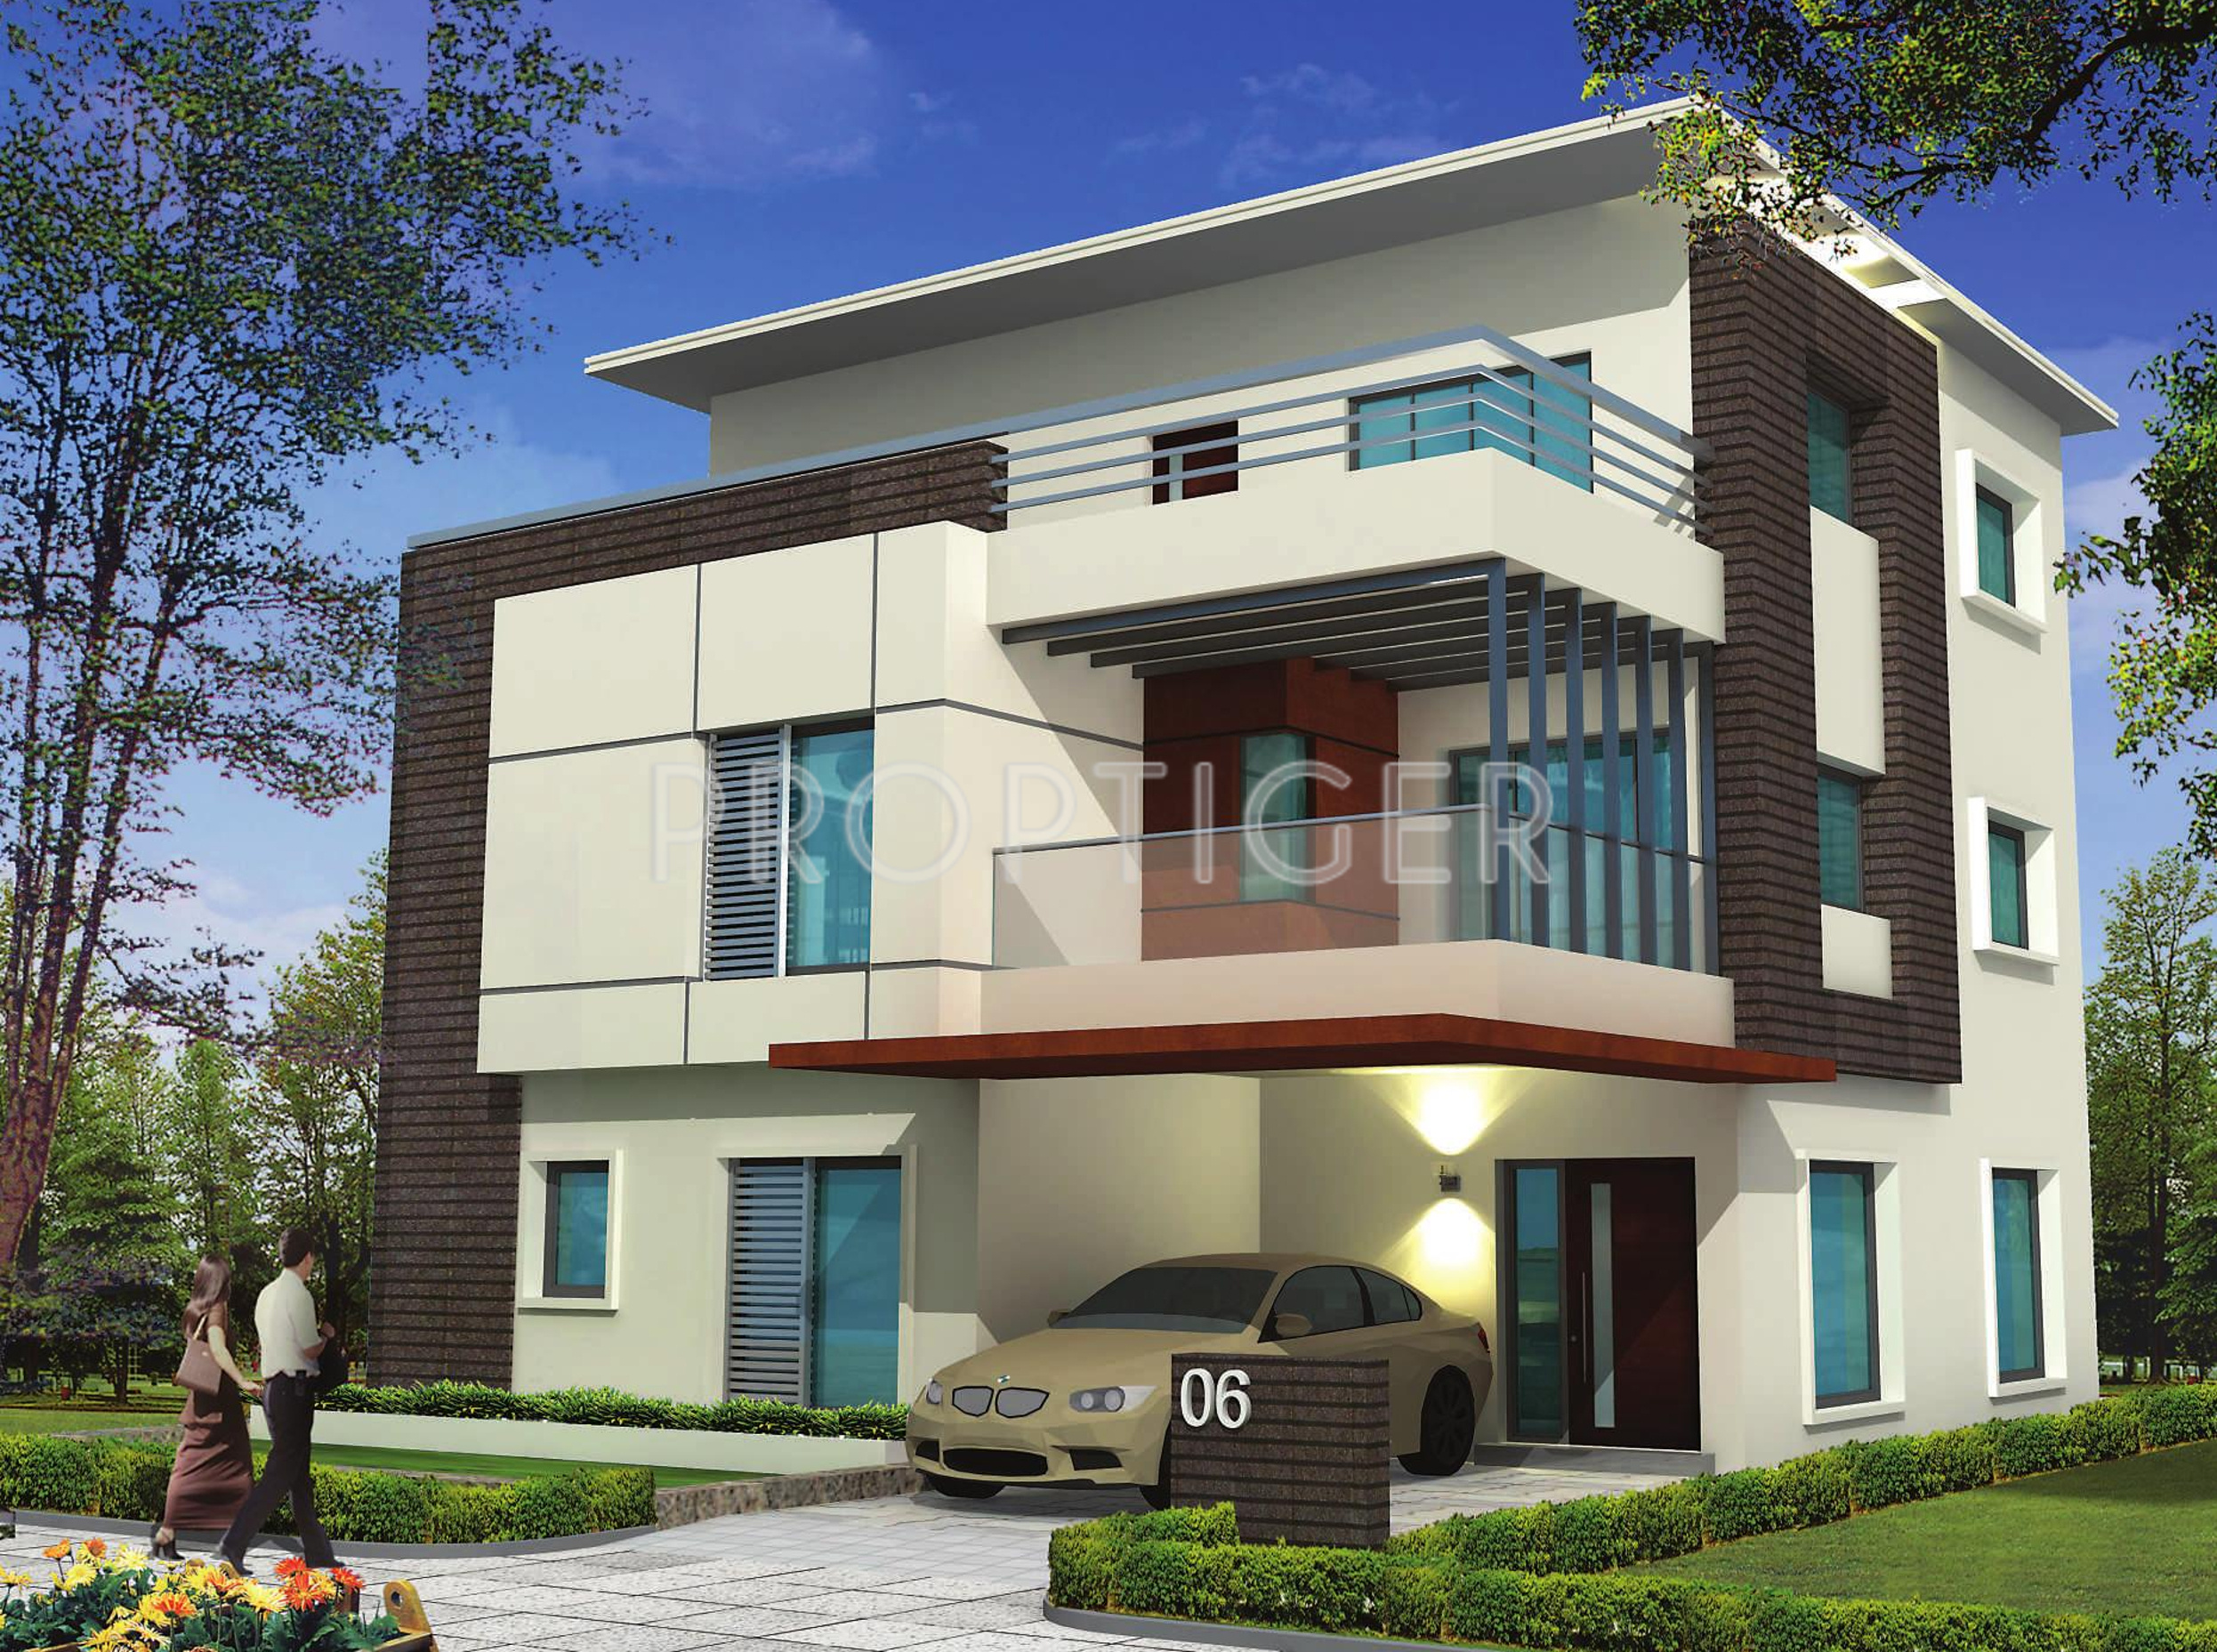 Bhk Floor Front Elevation : Sq ft bhk floor plan image relcon projects marvel